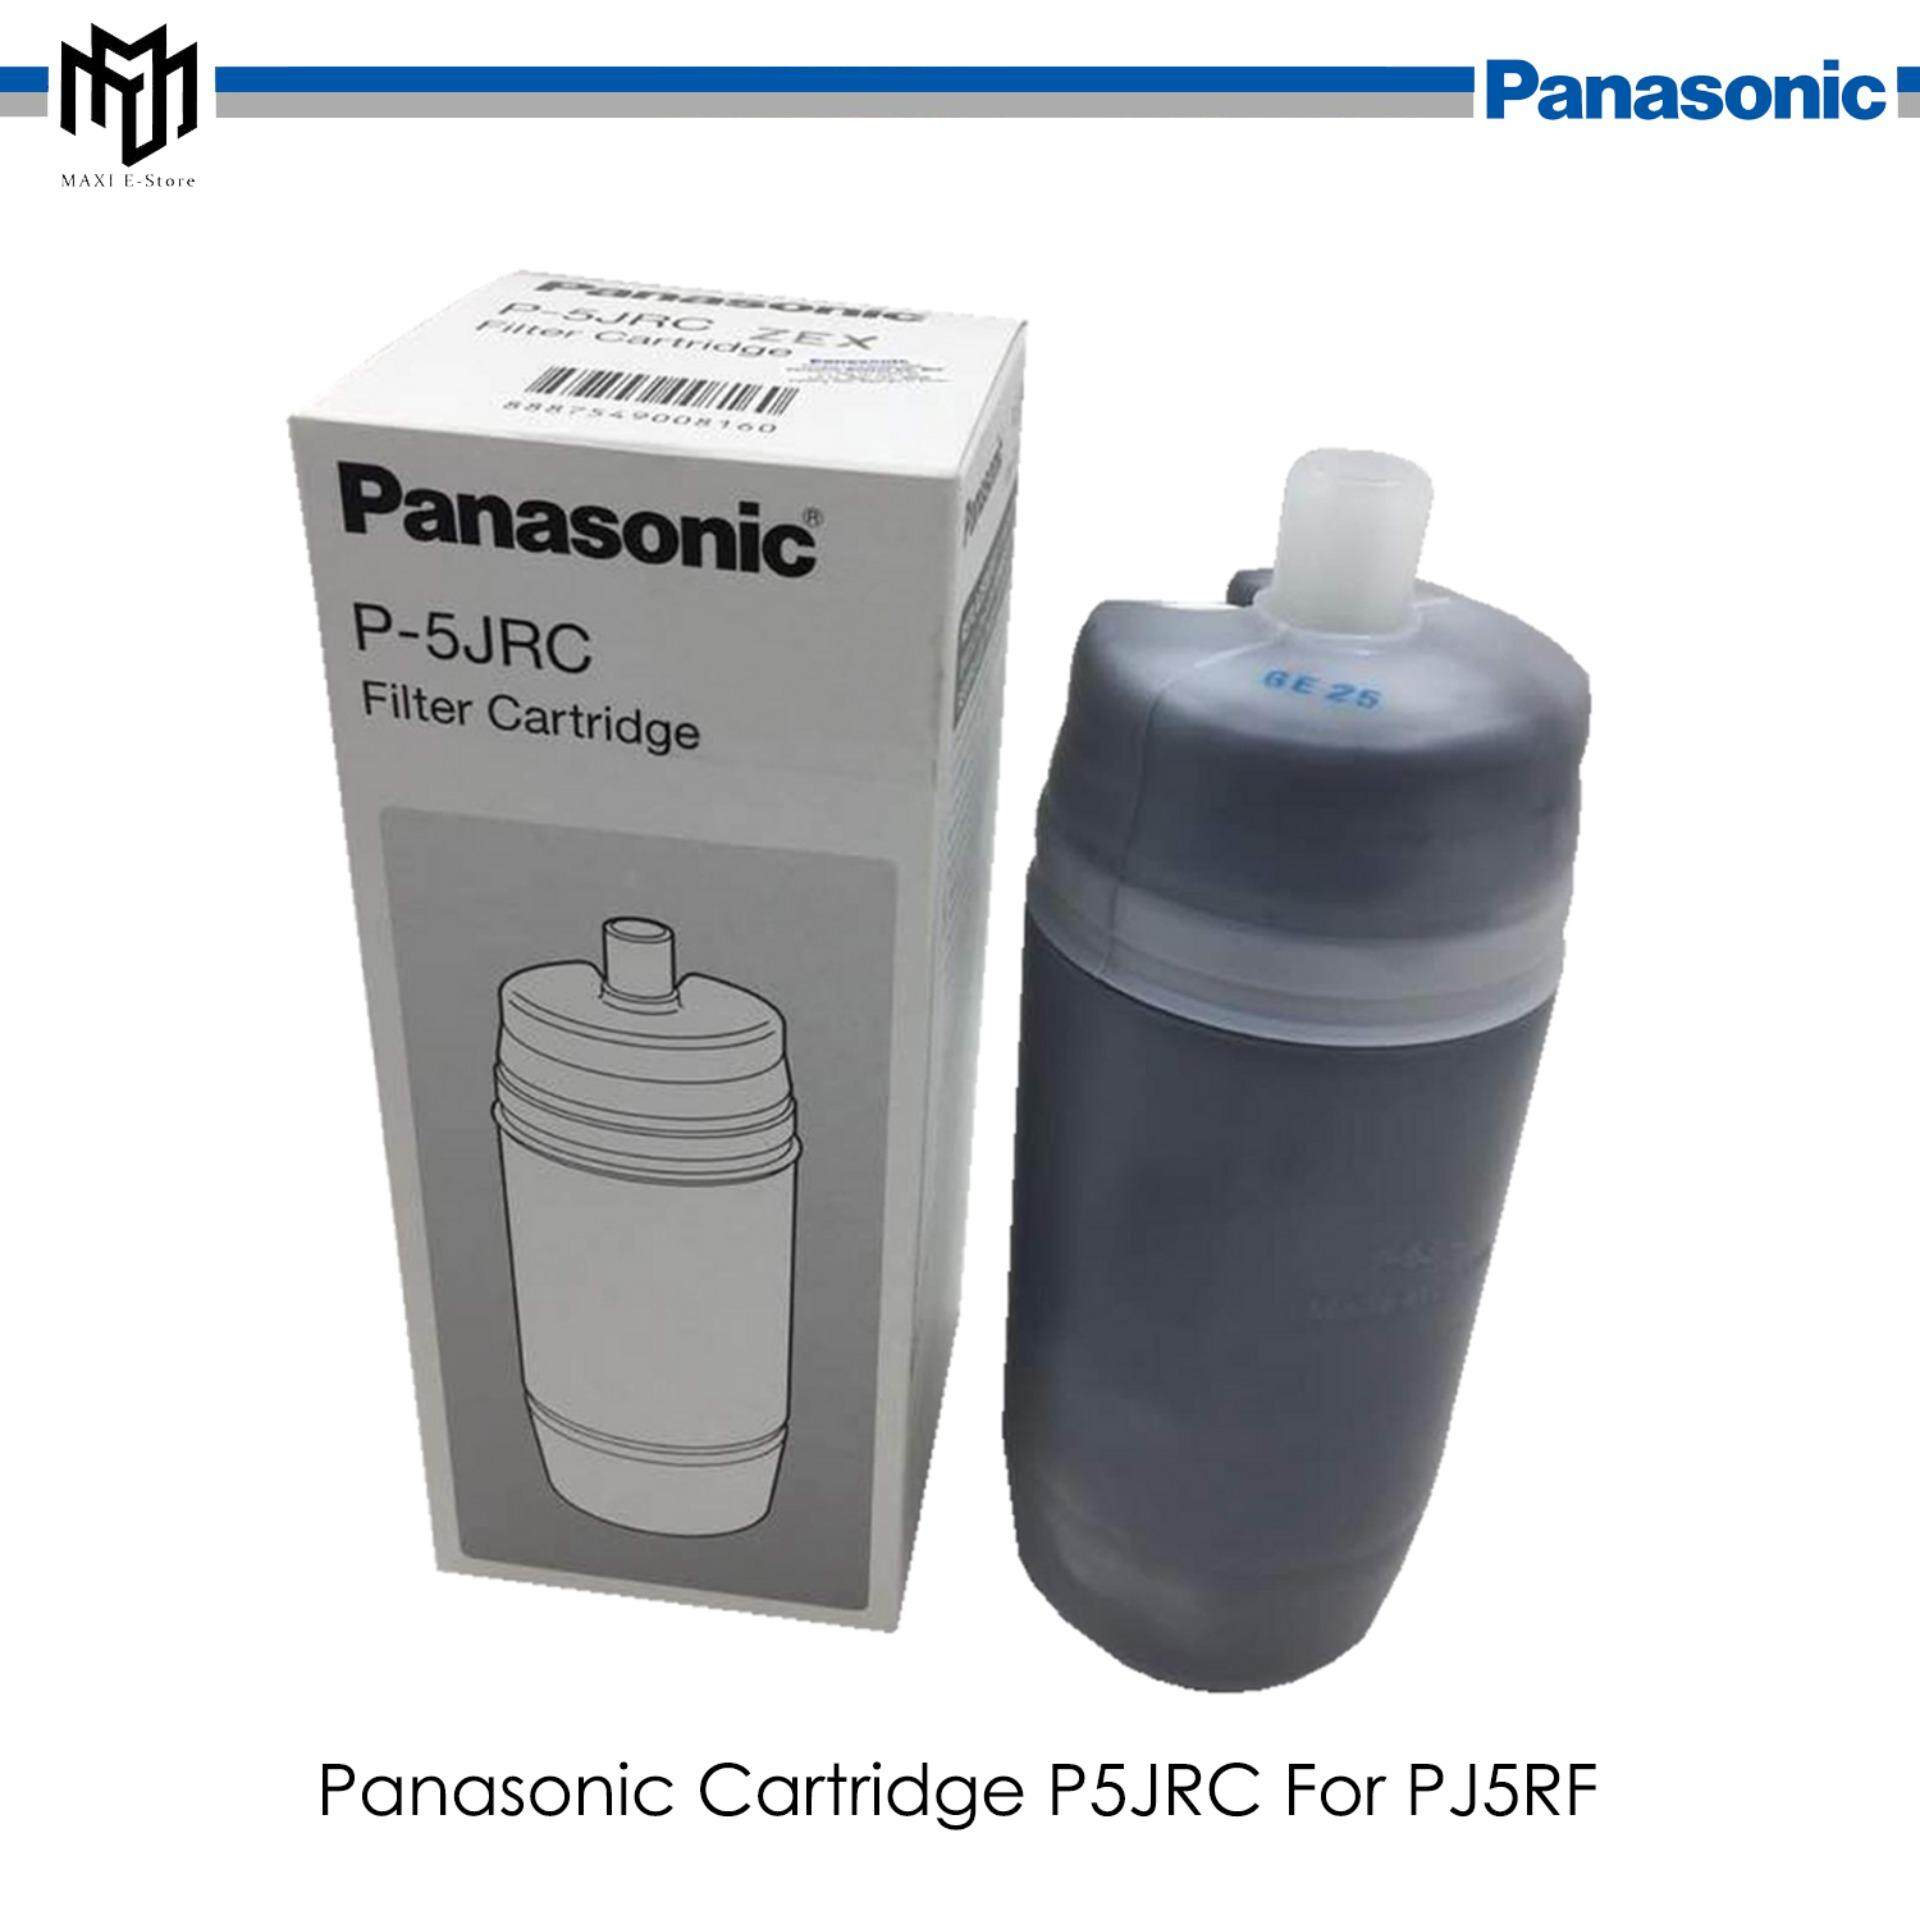 Panasonic Cartridge P5jrc For Pj5rf By Maxi E-Store.